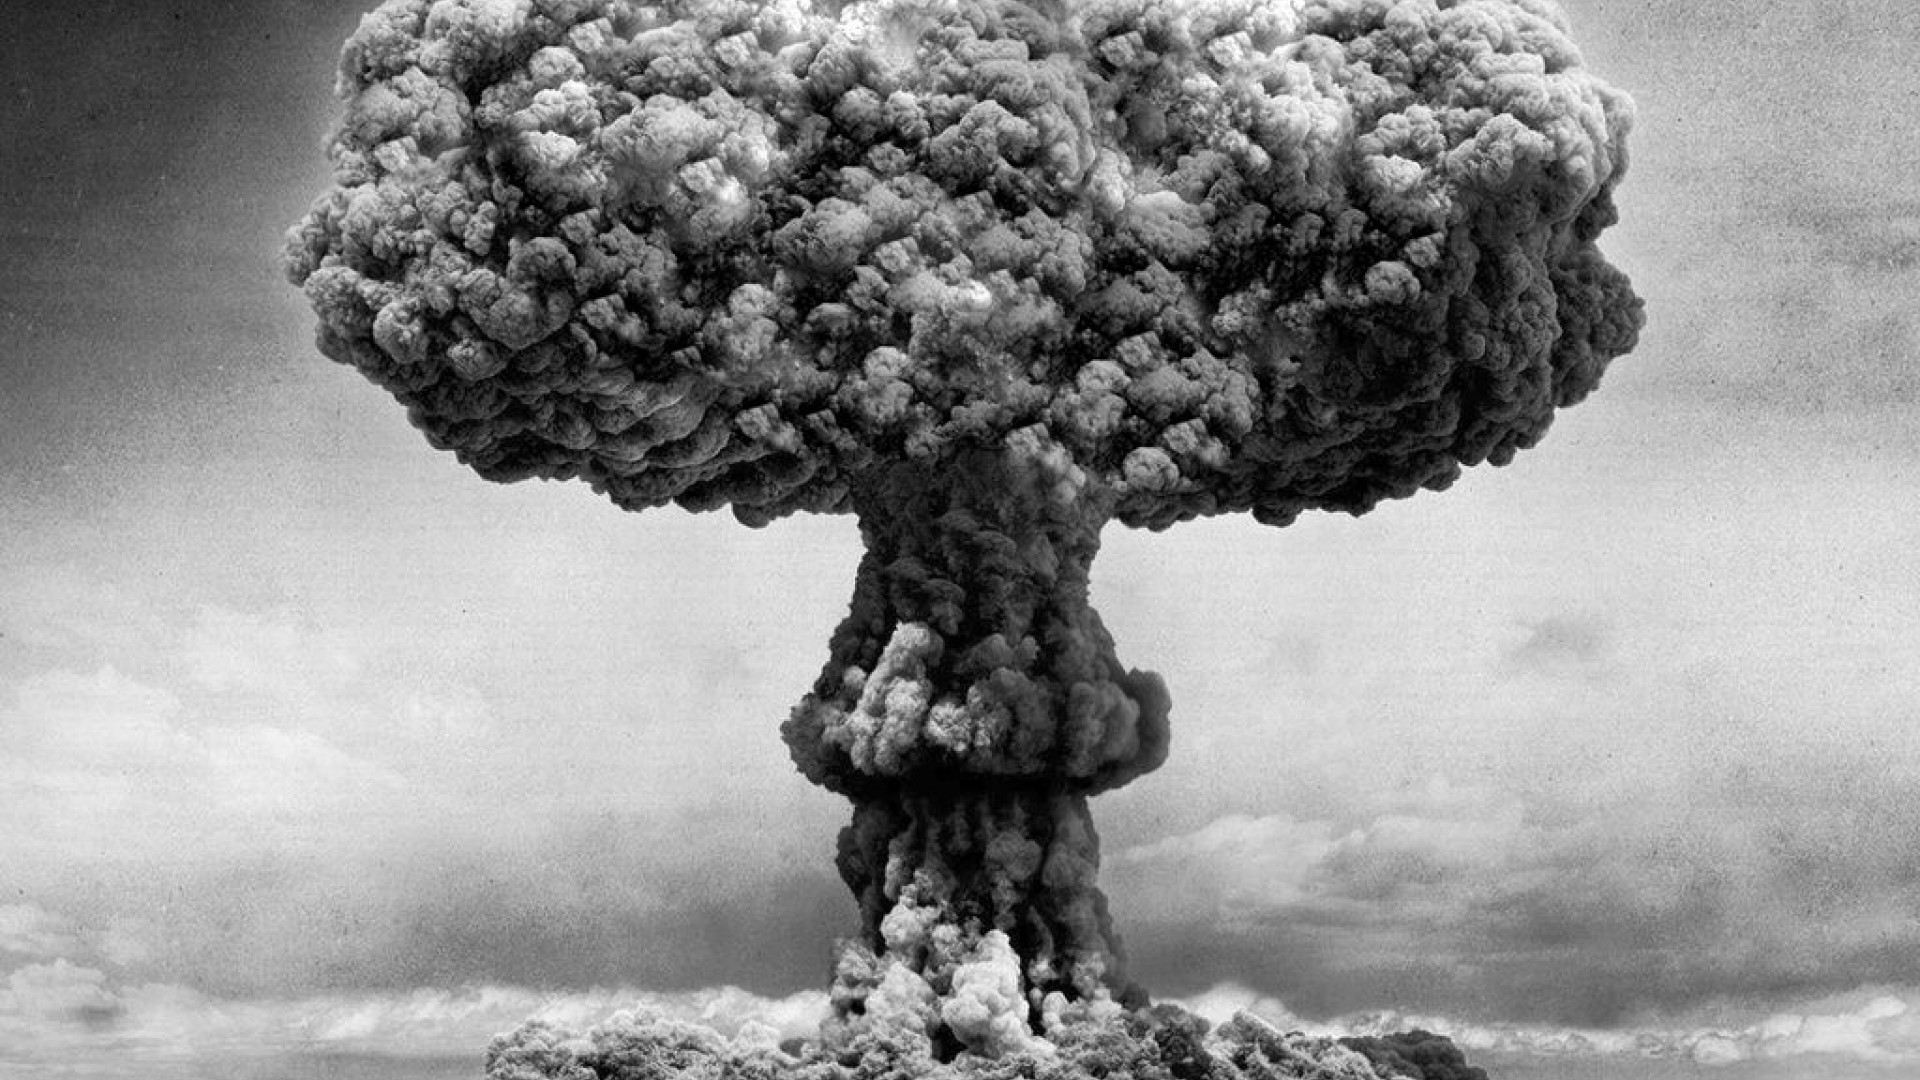 Atomic Bomb Black And White Hd Wallpaper Iphone 7 Plus Iphone 8